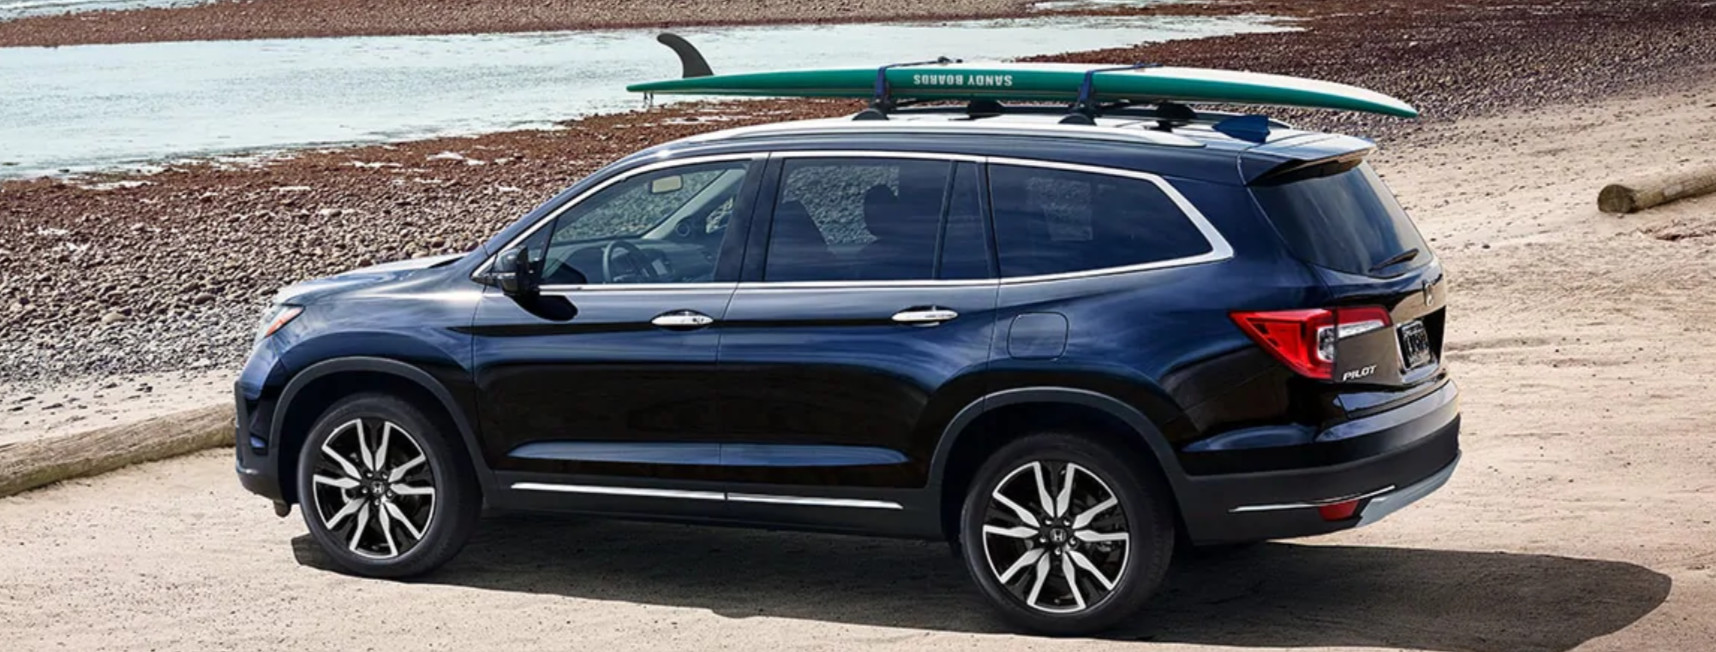 2020 Honda Pilot Leasing near Fairfax, VA